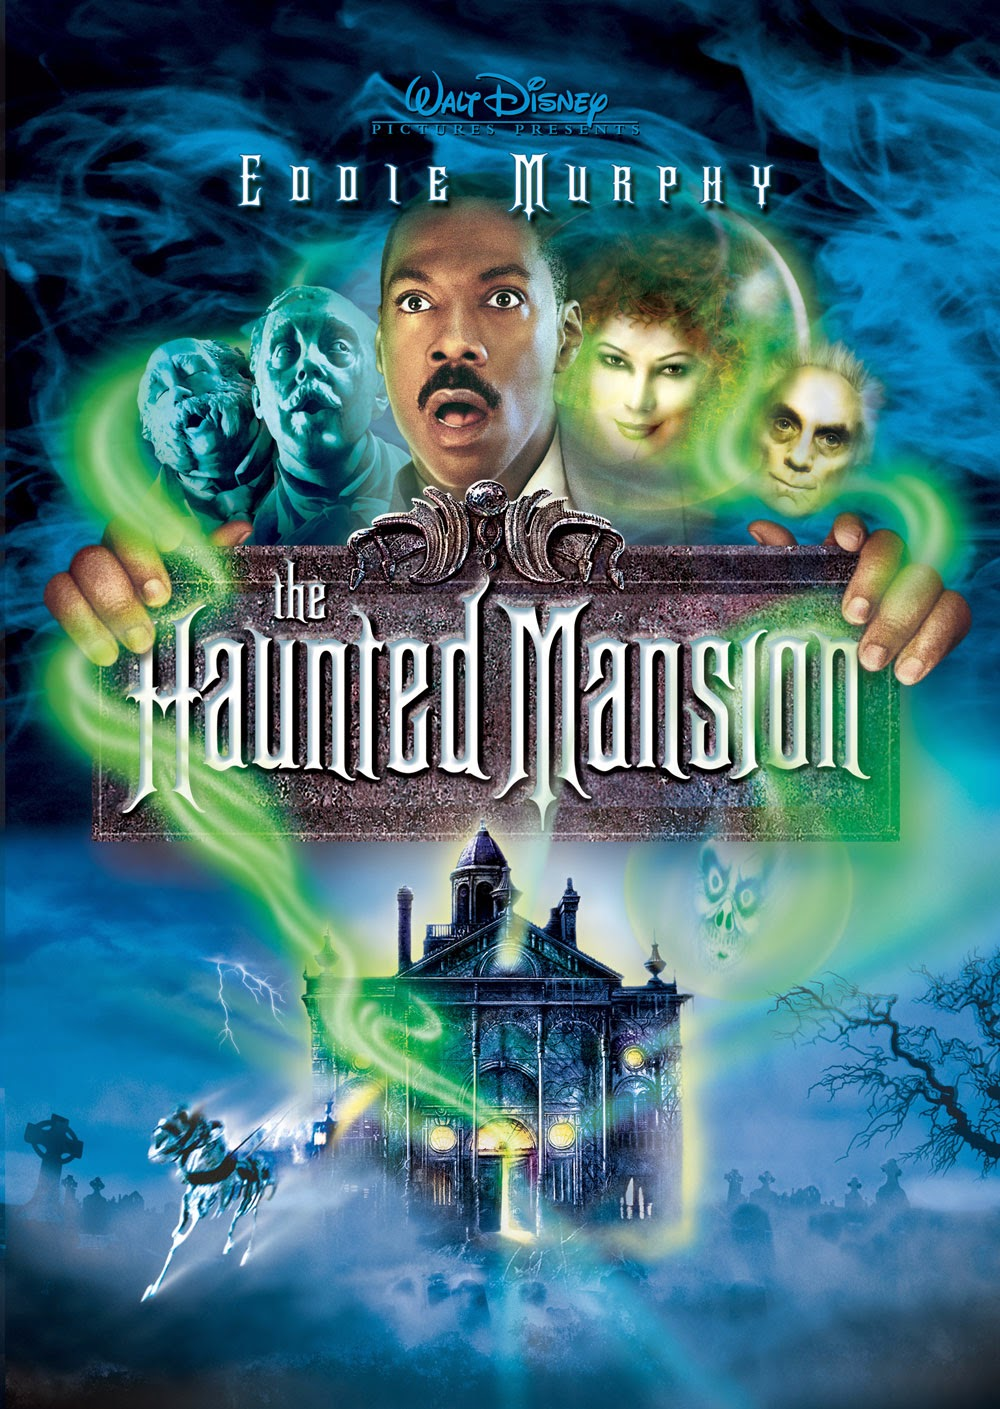 Watch the haunted mansion 2003 online for free full movie